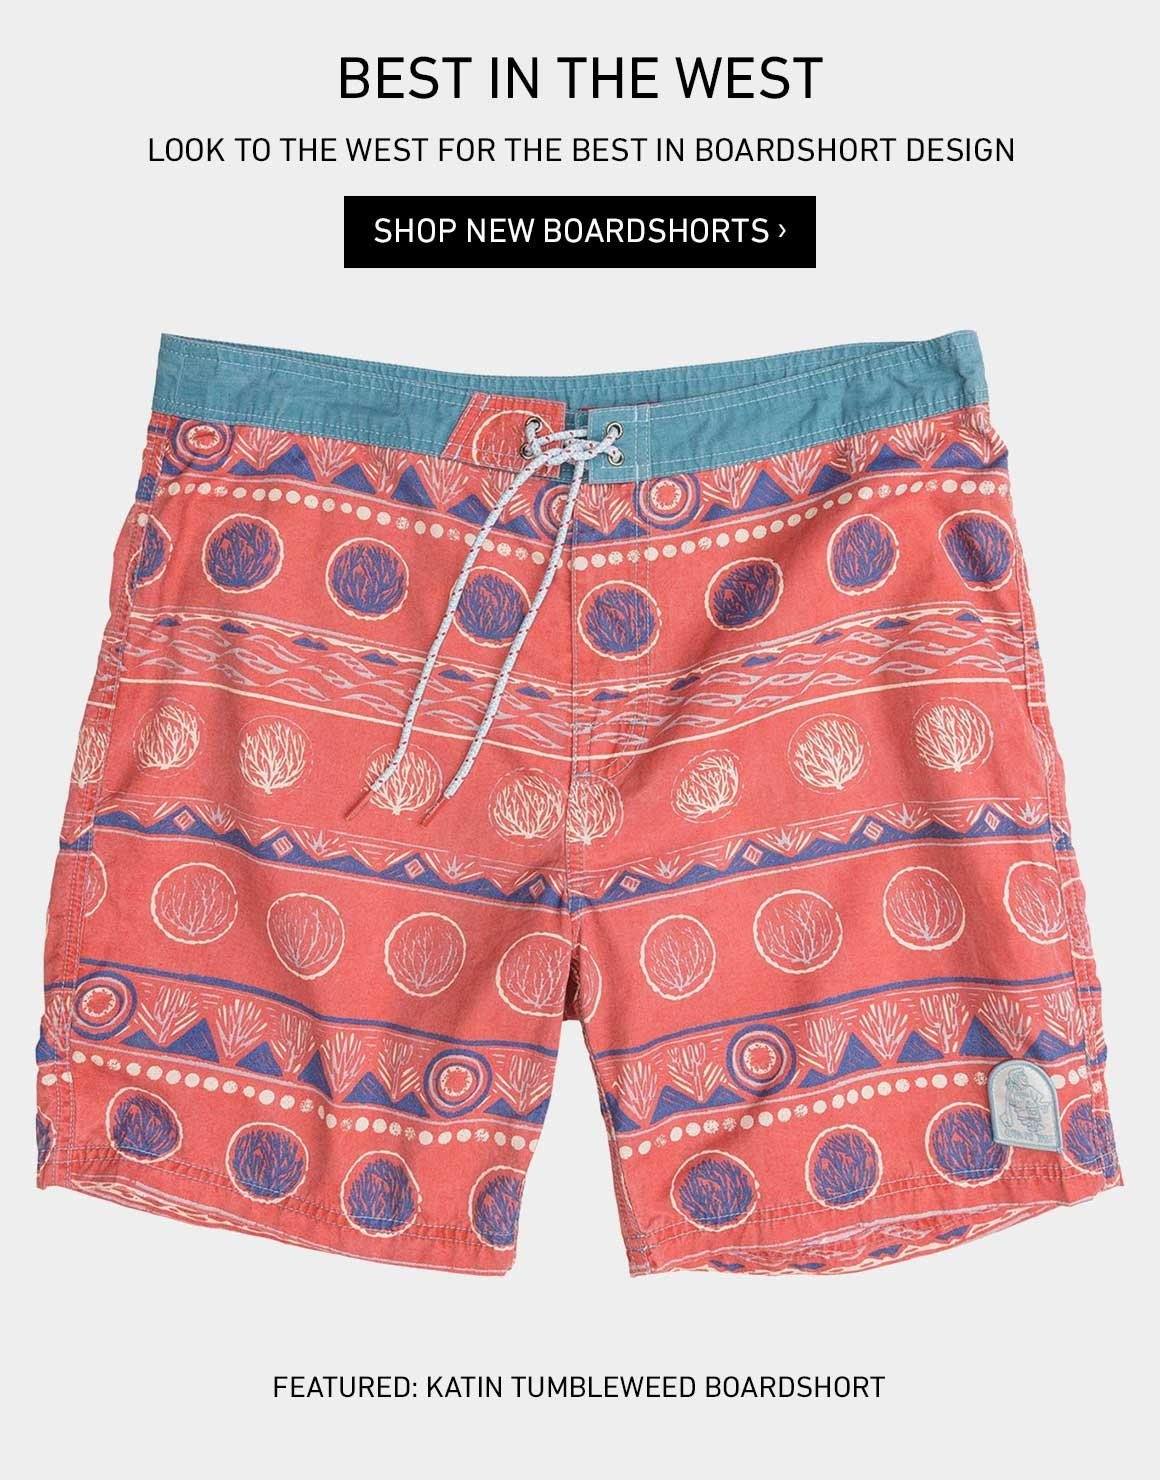 Best In The West: Shop New Boardshorts